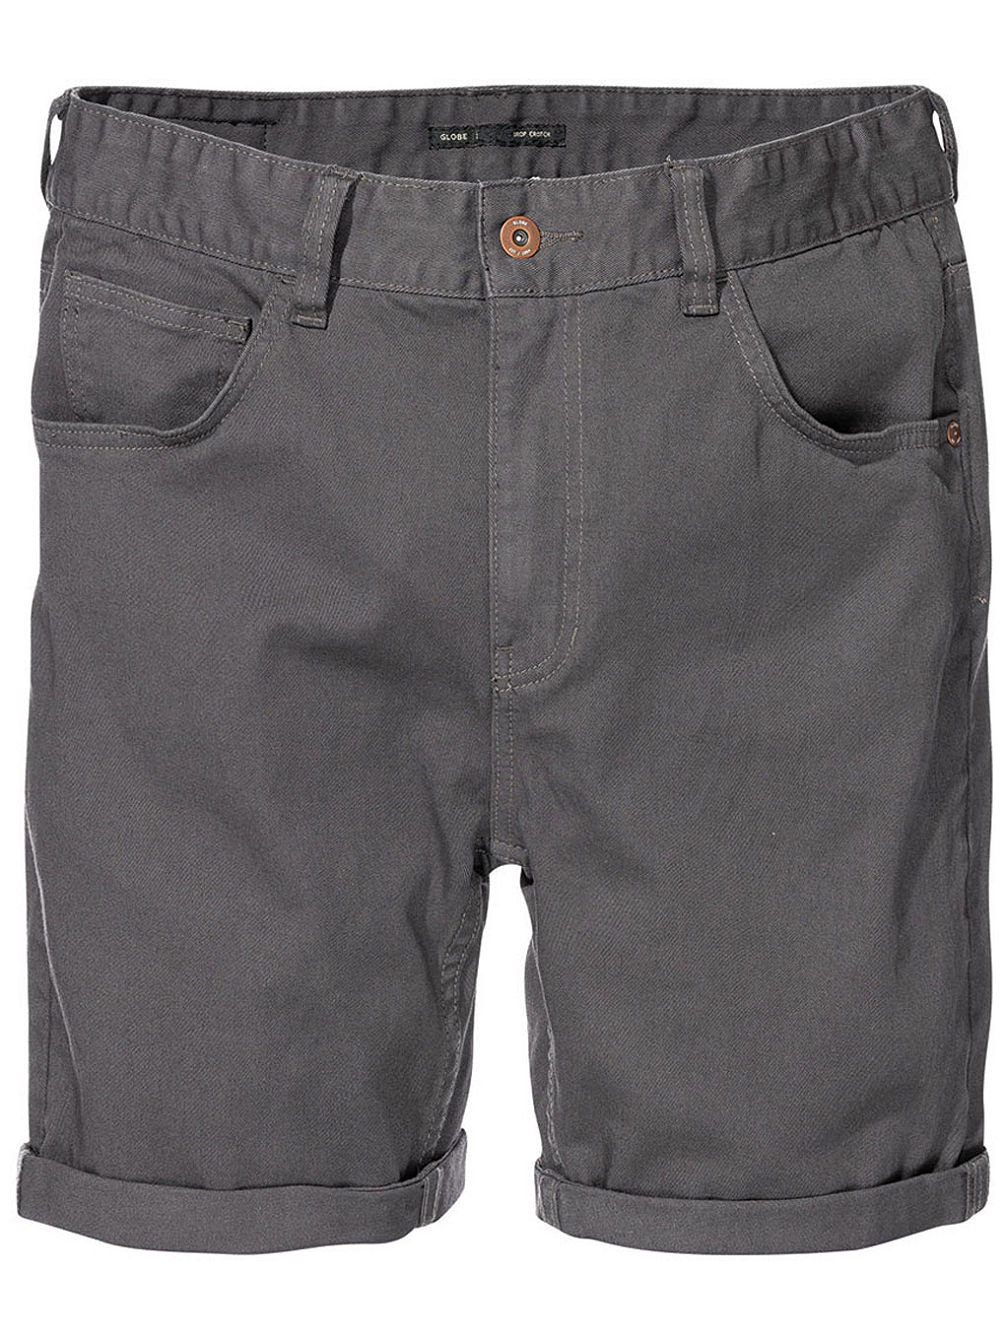 Goodstock Denim Shorts